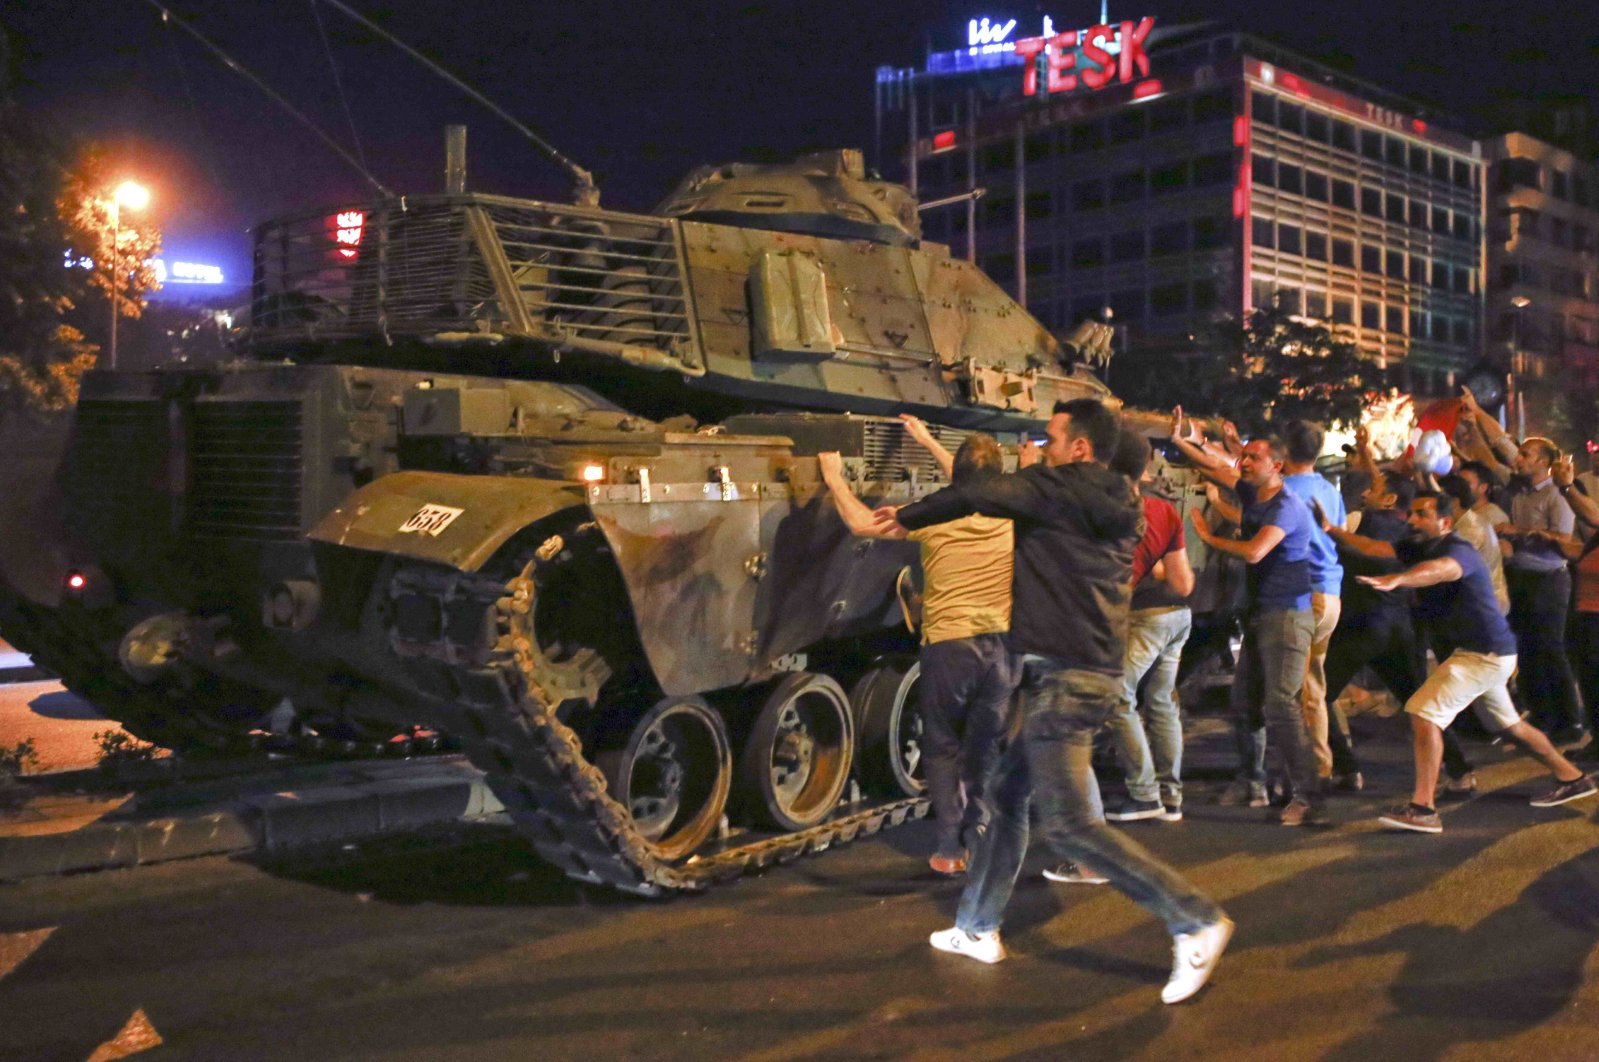 People try to stop a tank commanded by putschists during the coup attempt, in the capital Ankara, Turkey, July 16, 2016. (Reuters Photo)